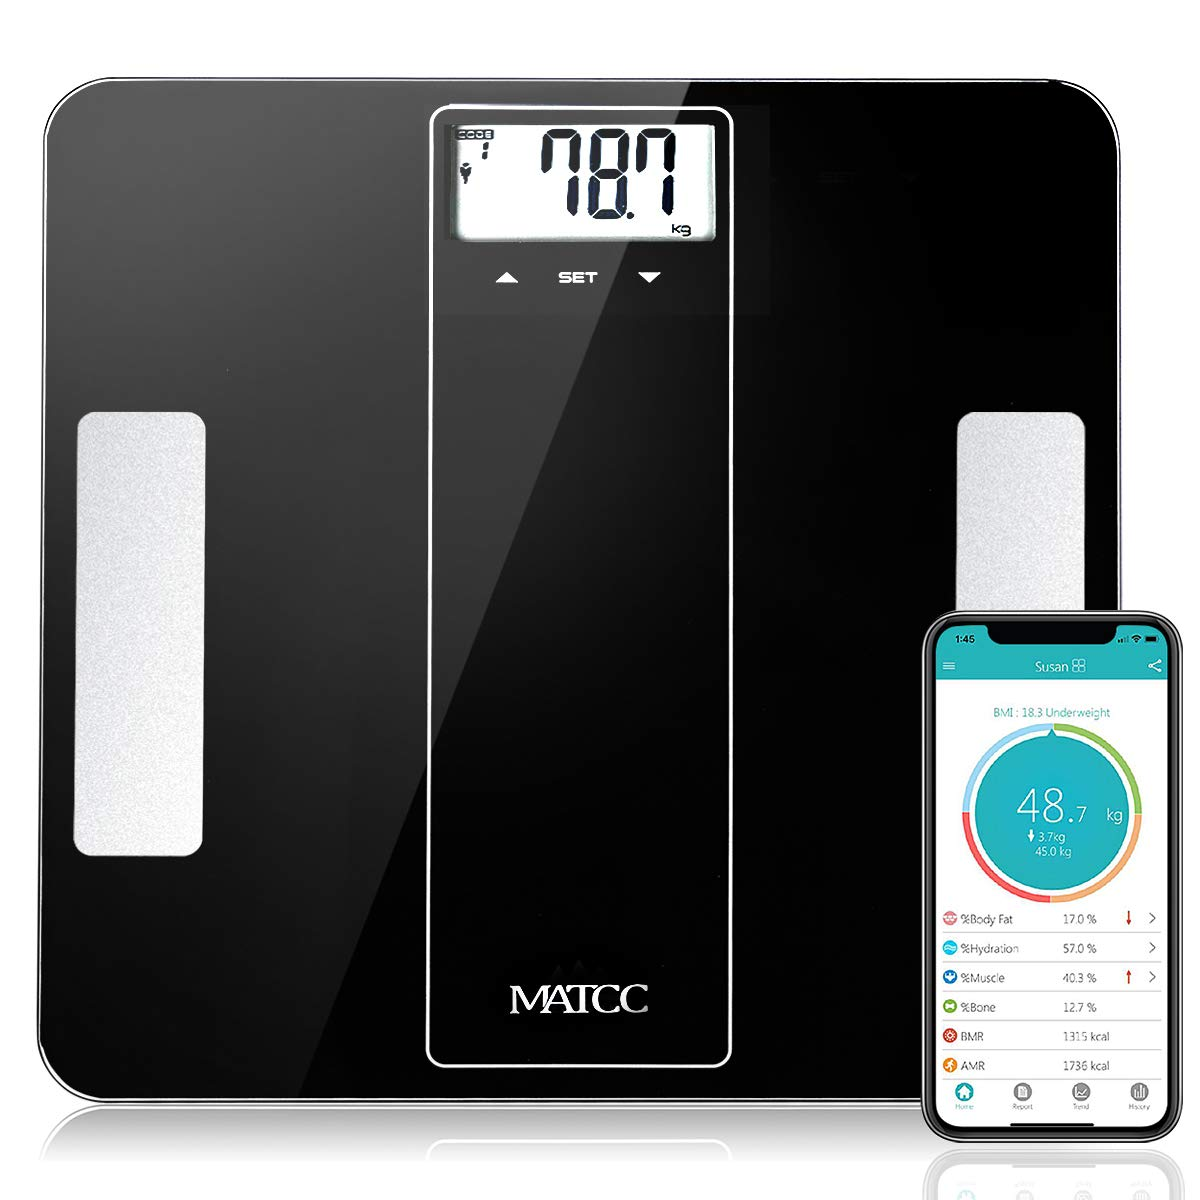 MATCC Bluetooth Body Fat Scale Smart Digital Wireless Weight Bathroom Scale with iOS and Android APP Body Composition Analyzer Health Monitor 400 lbs Capacity by MATCC